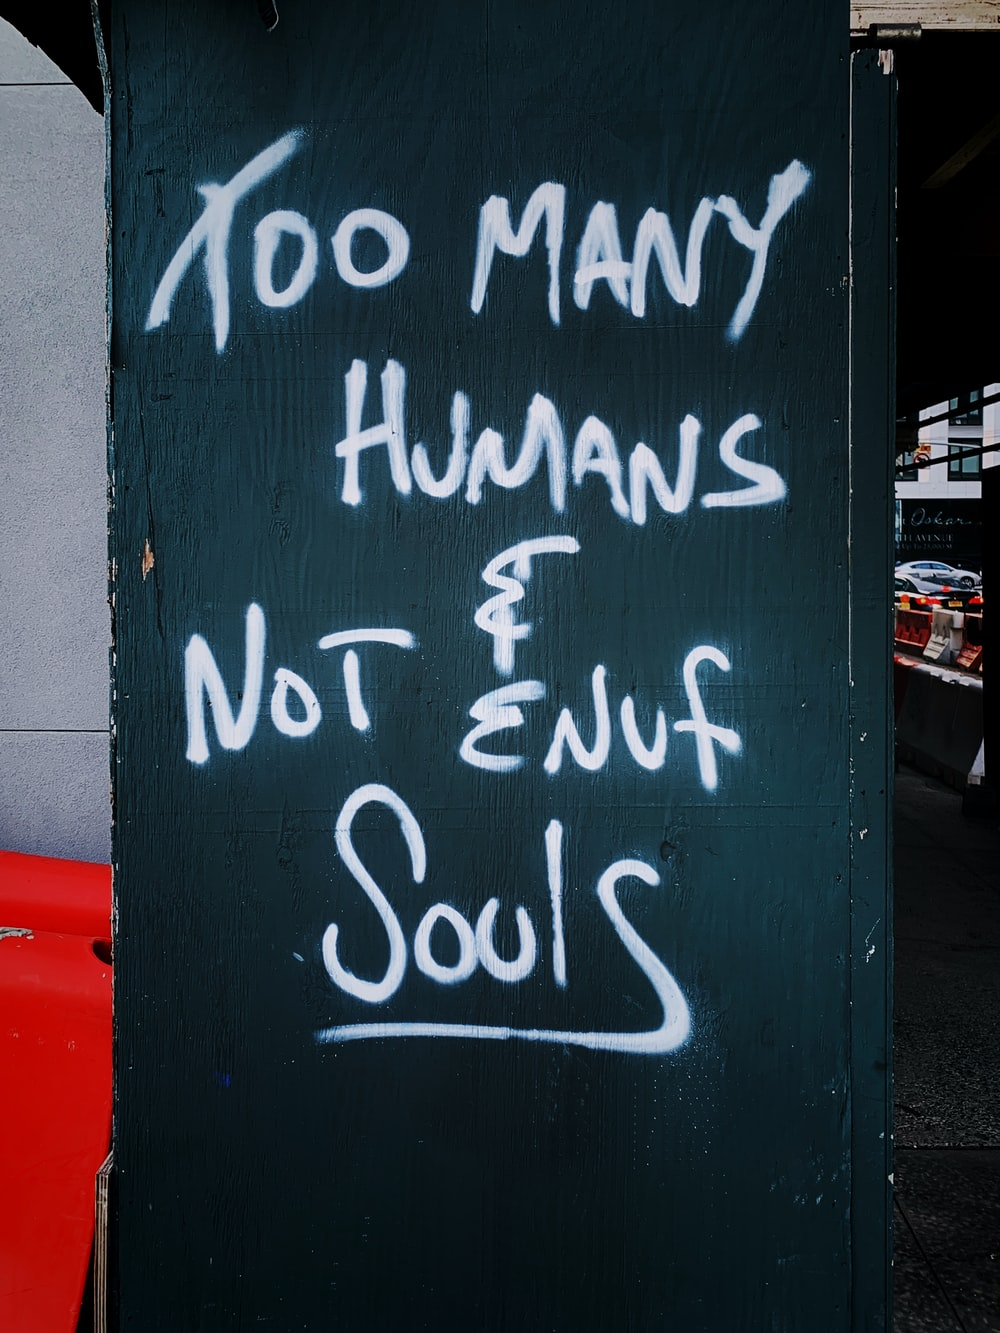 too many humans & not enuf souls sign